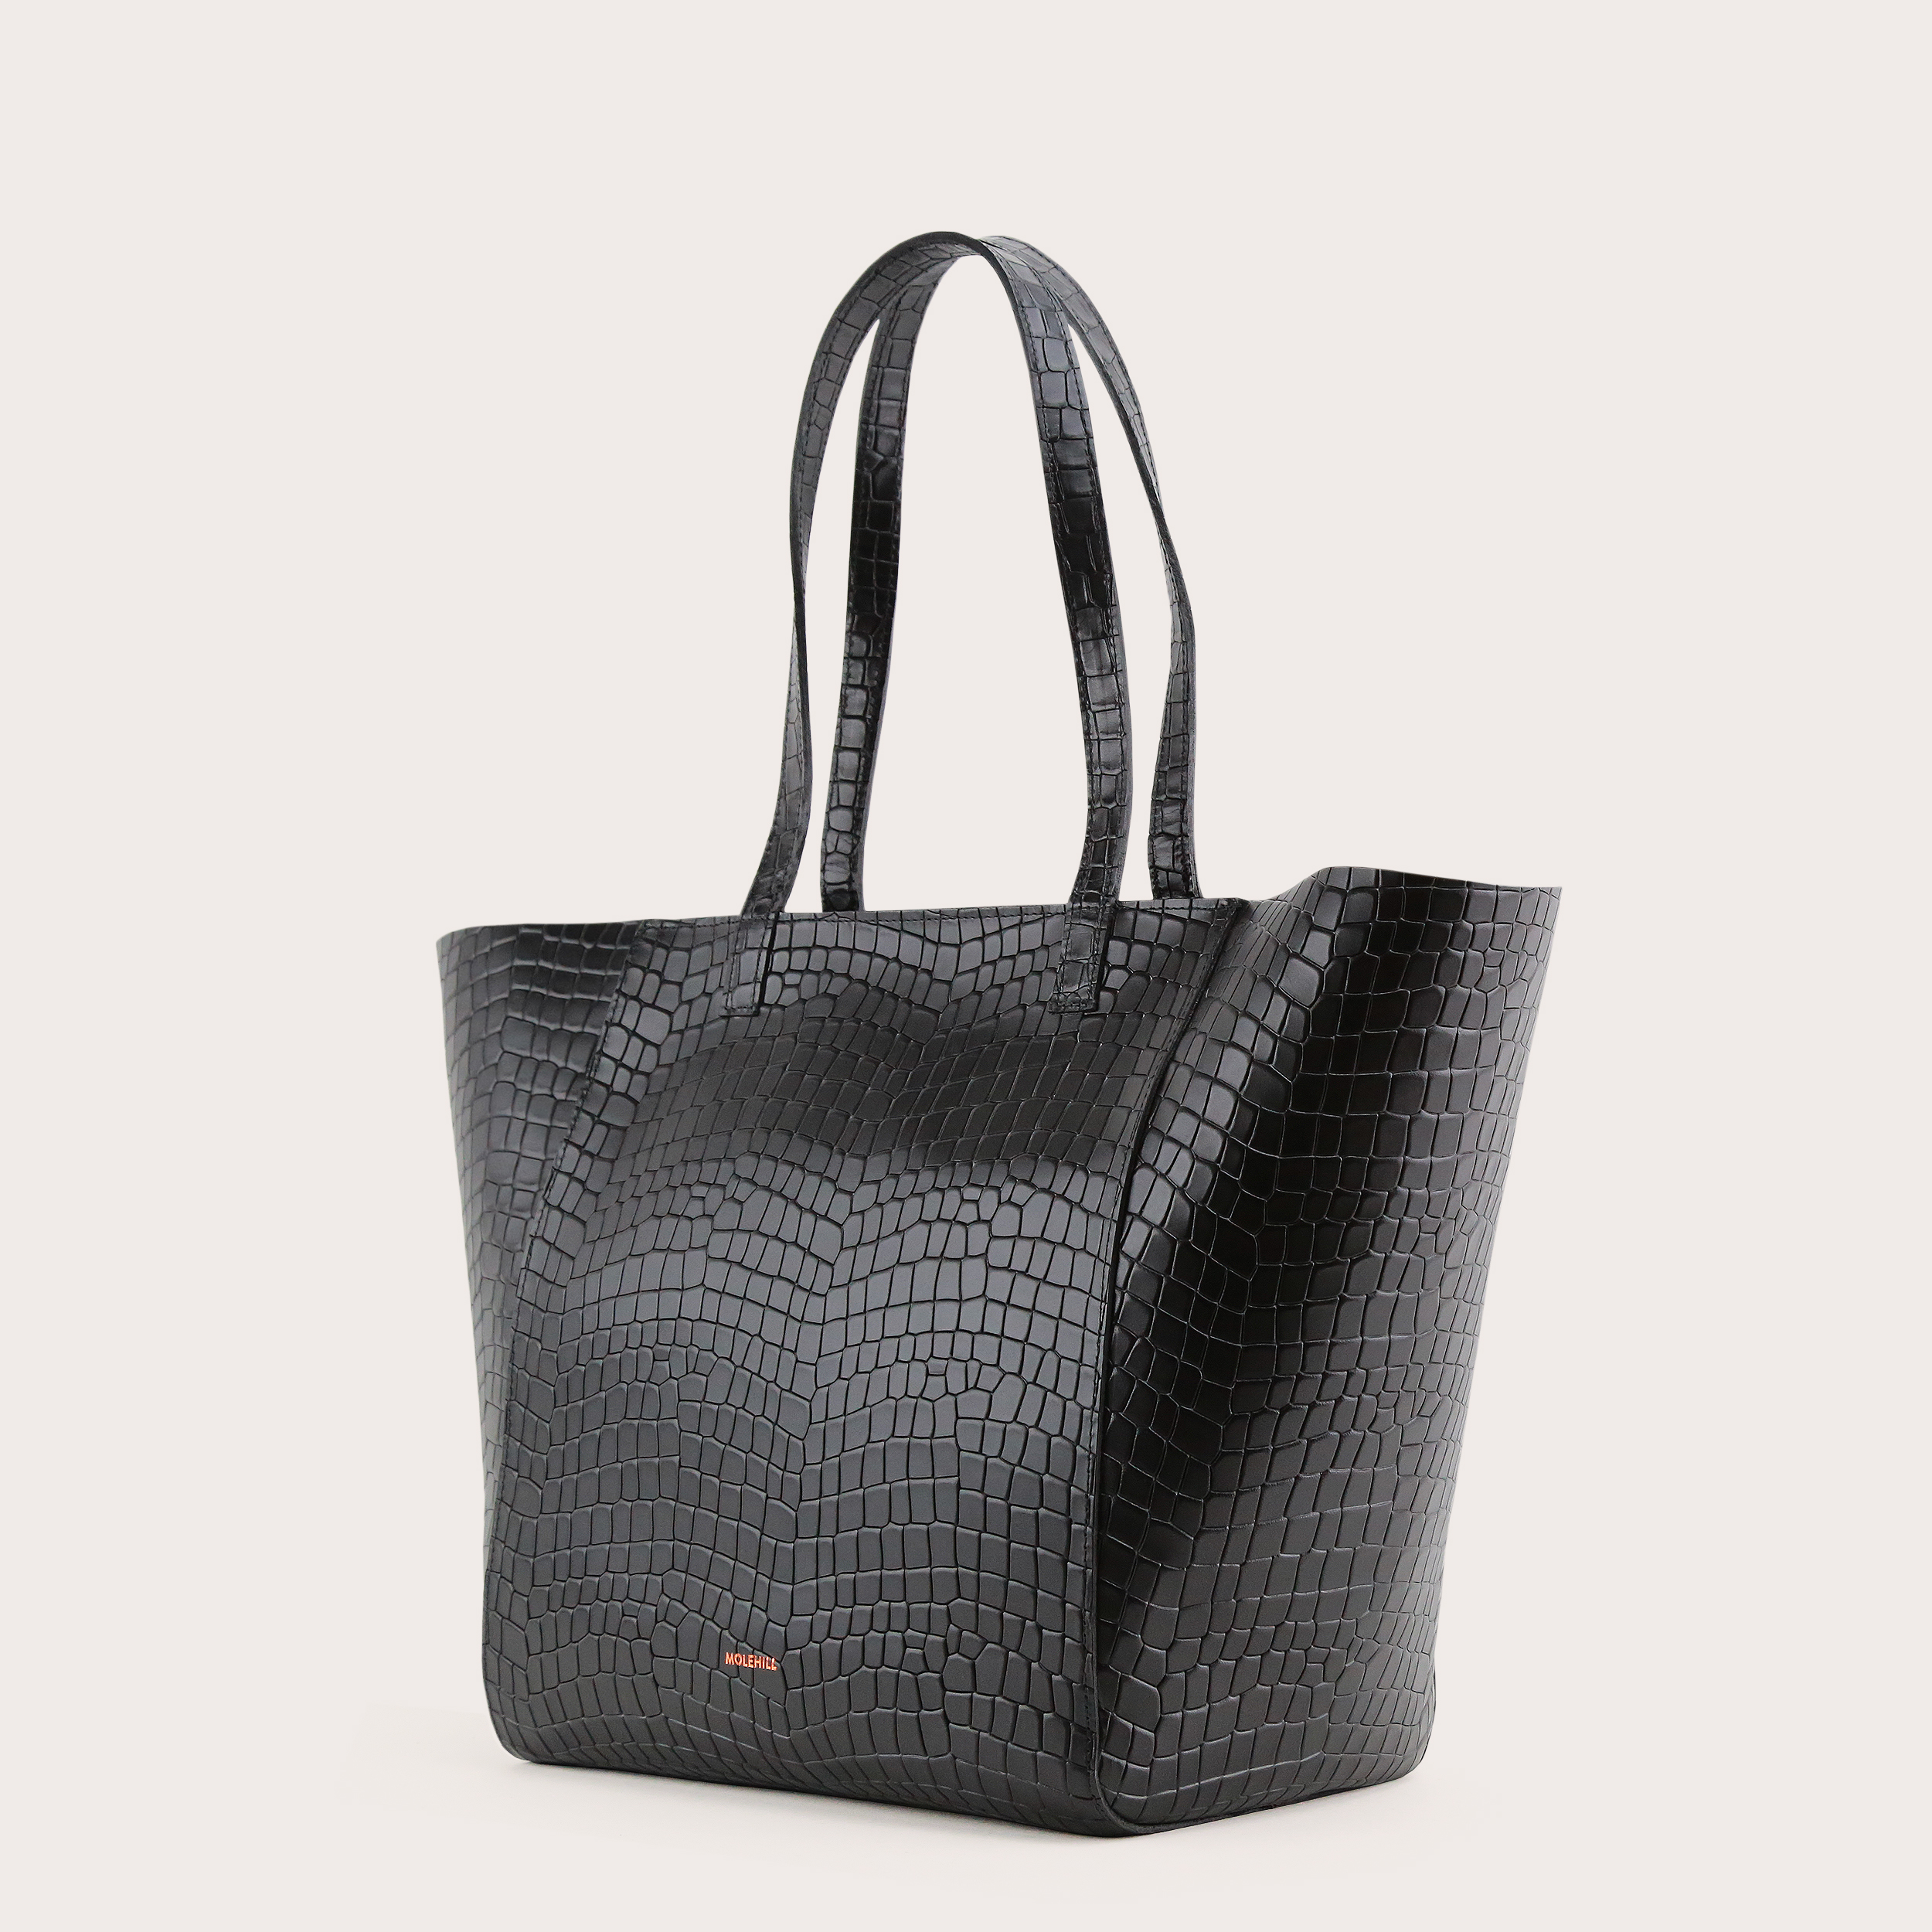 Torba ESTE Medium Zip Shopper Bag Croco Black 3